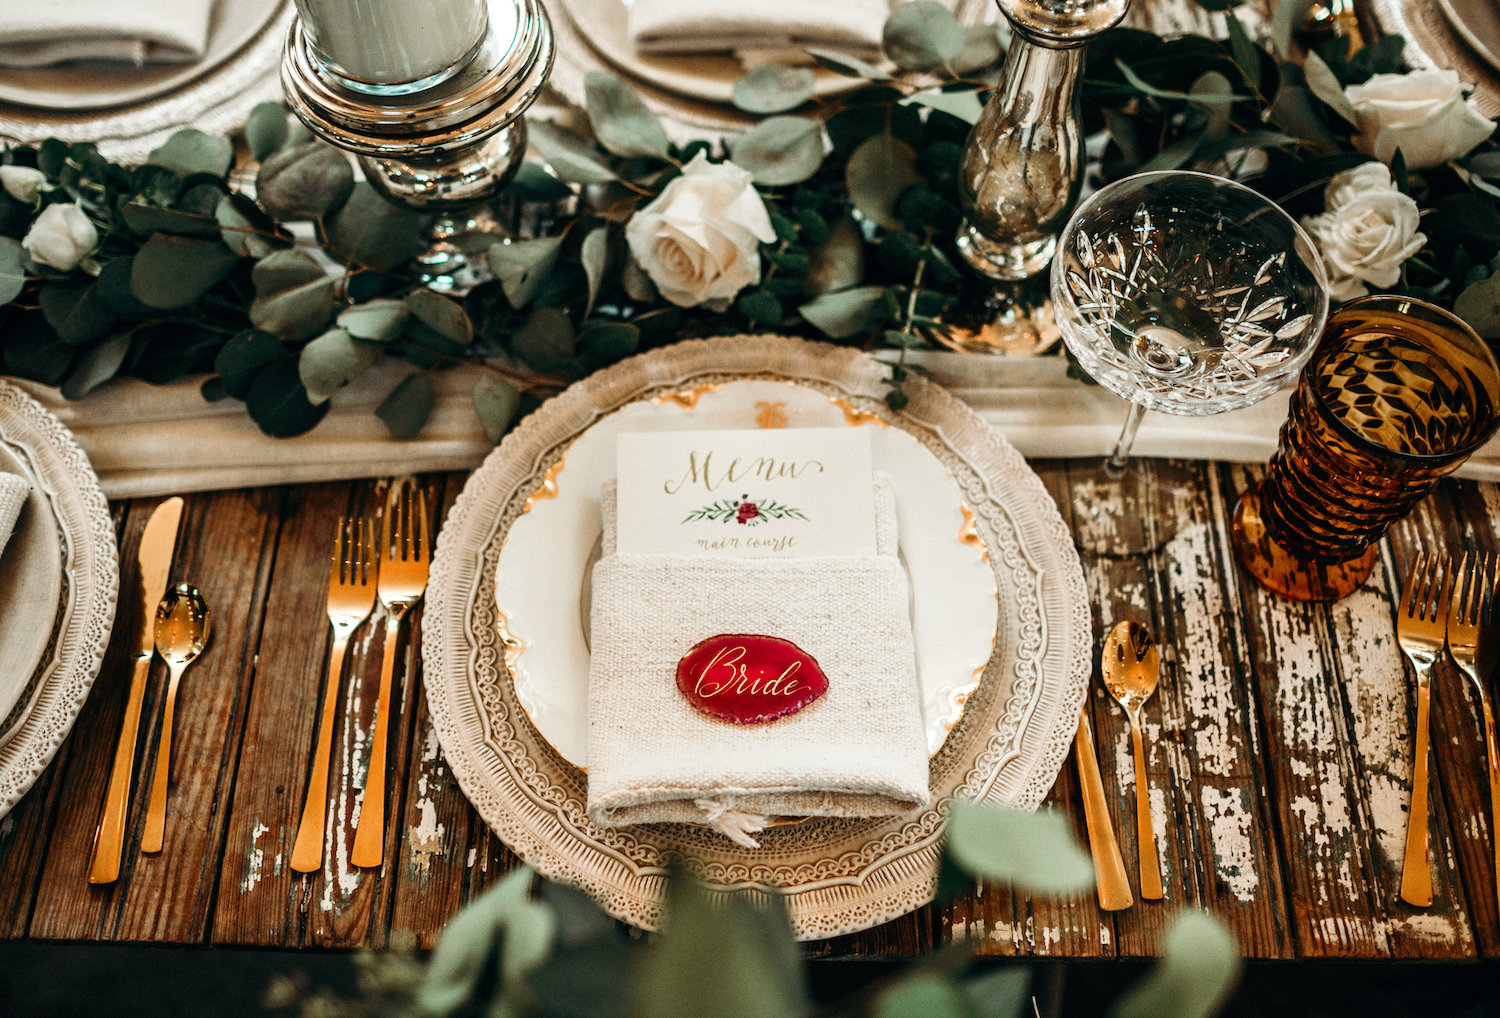 Rustic wedding place setting with agate namecard